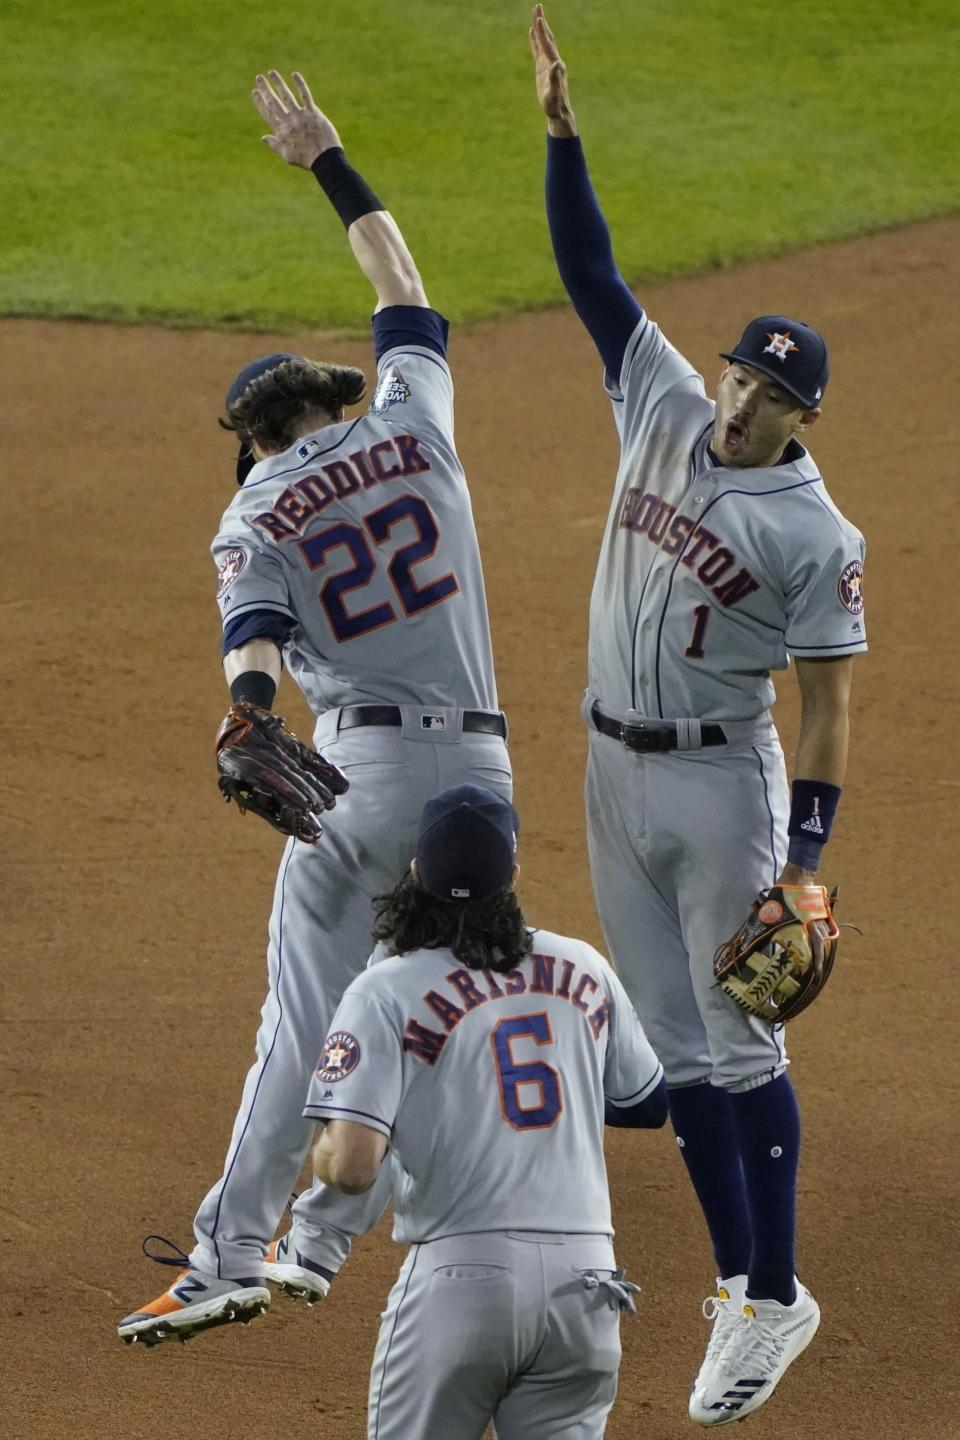 Houston Astros' Carlos Correa and Josh Reddick celebrate after Game 3 of the baseball World Series against the Washington Nationals Saturday, Oct. 26, 2019, in Washington. The Astros won 4-1. (AP Photo/Alex Brandon)